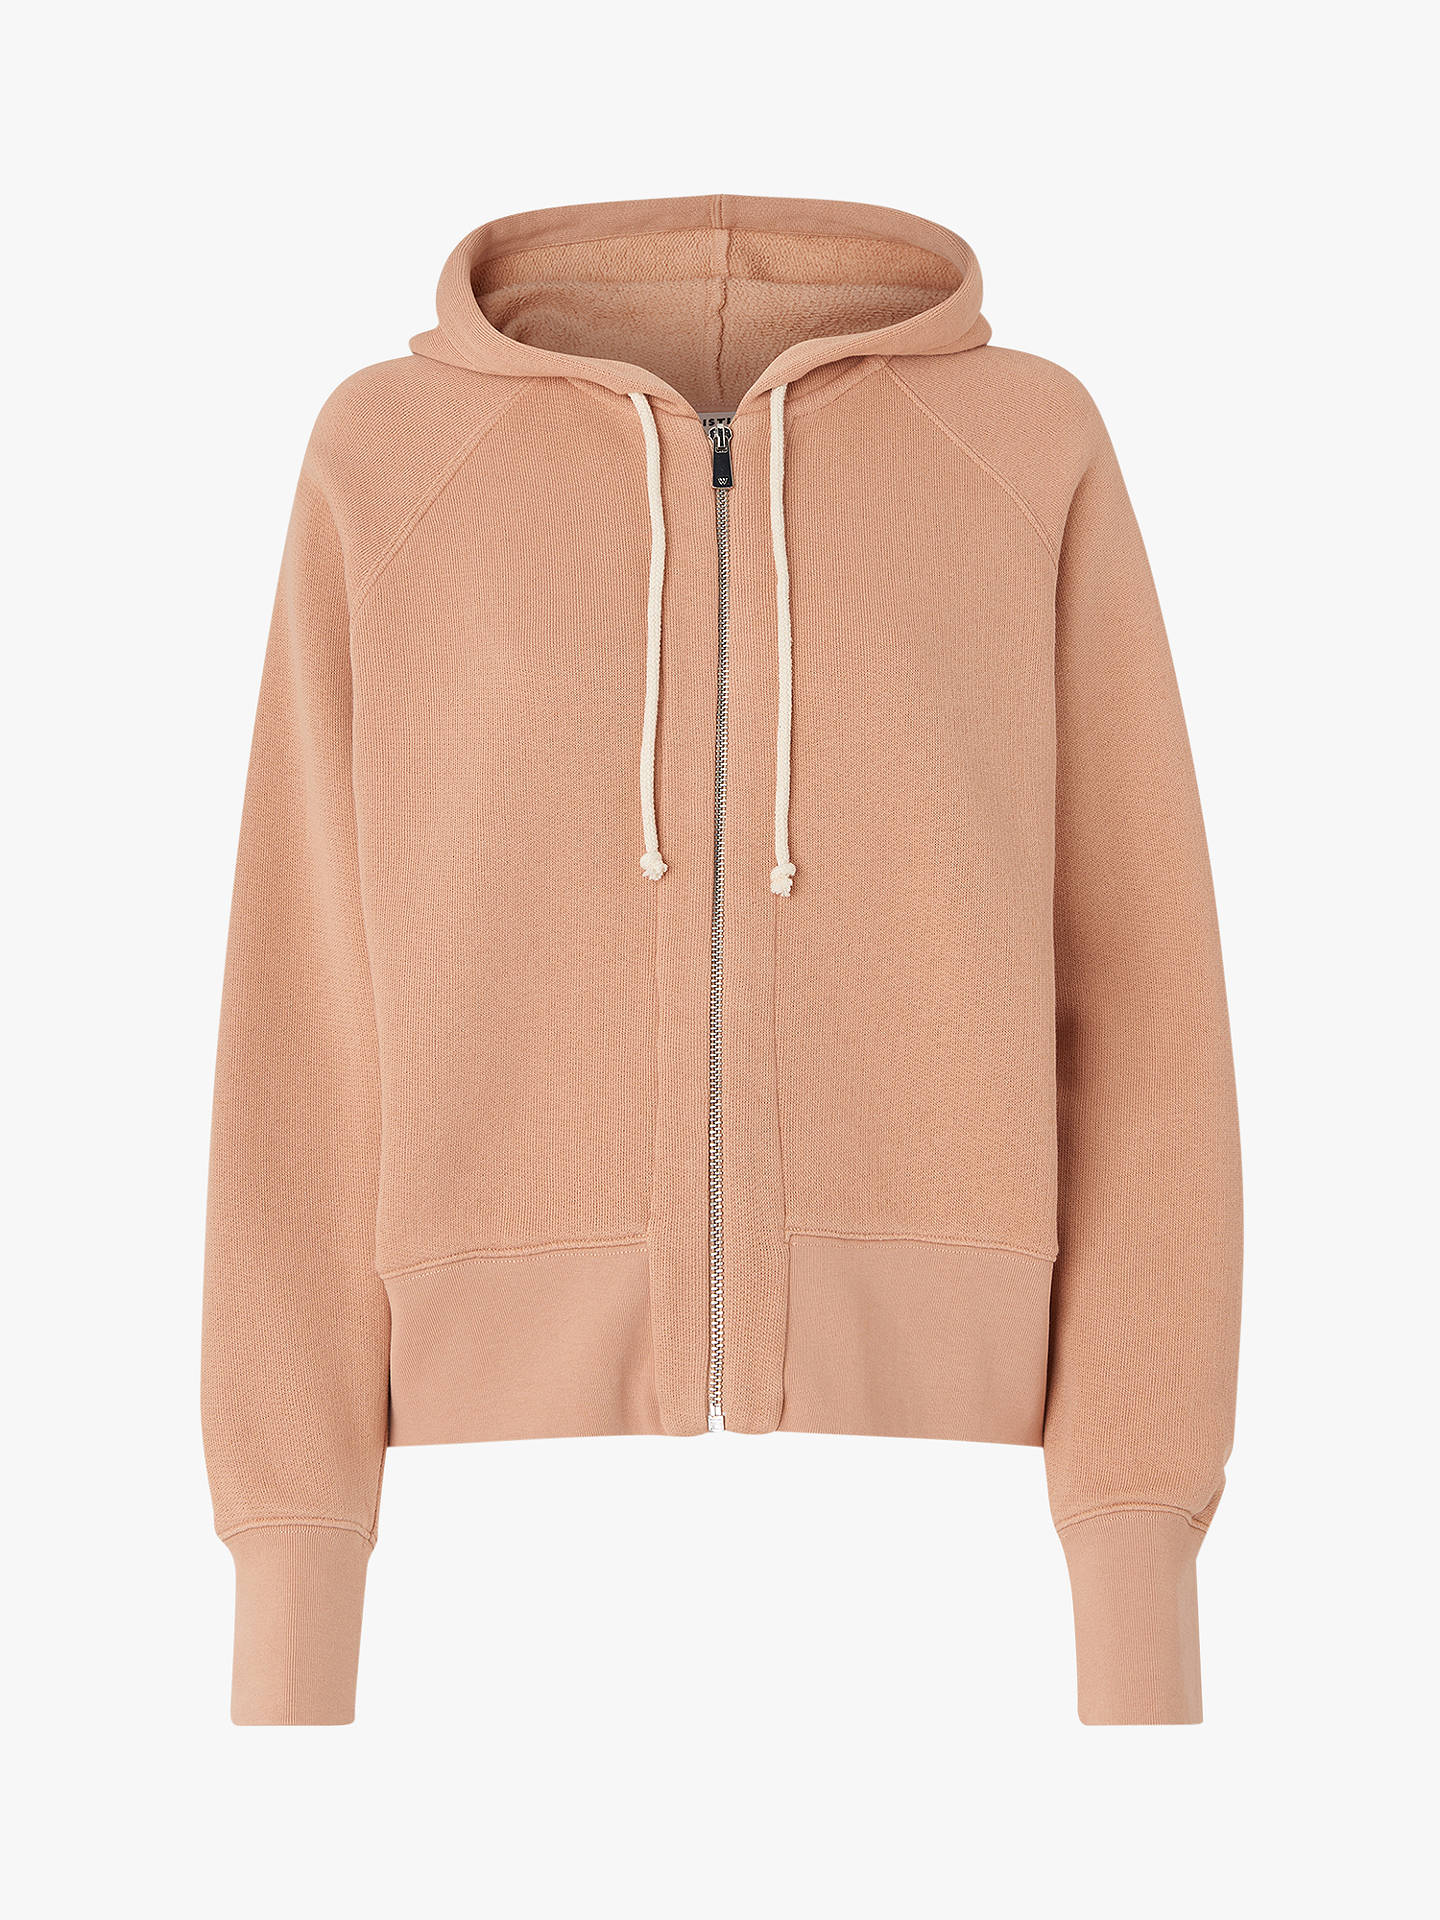 BuyWhistles Oversized Washed Fleece Hoodie, Neautral, XS Online at johnlewis.com